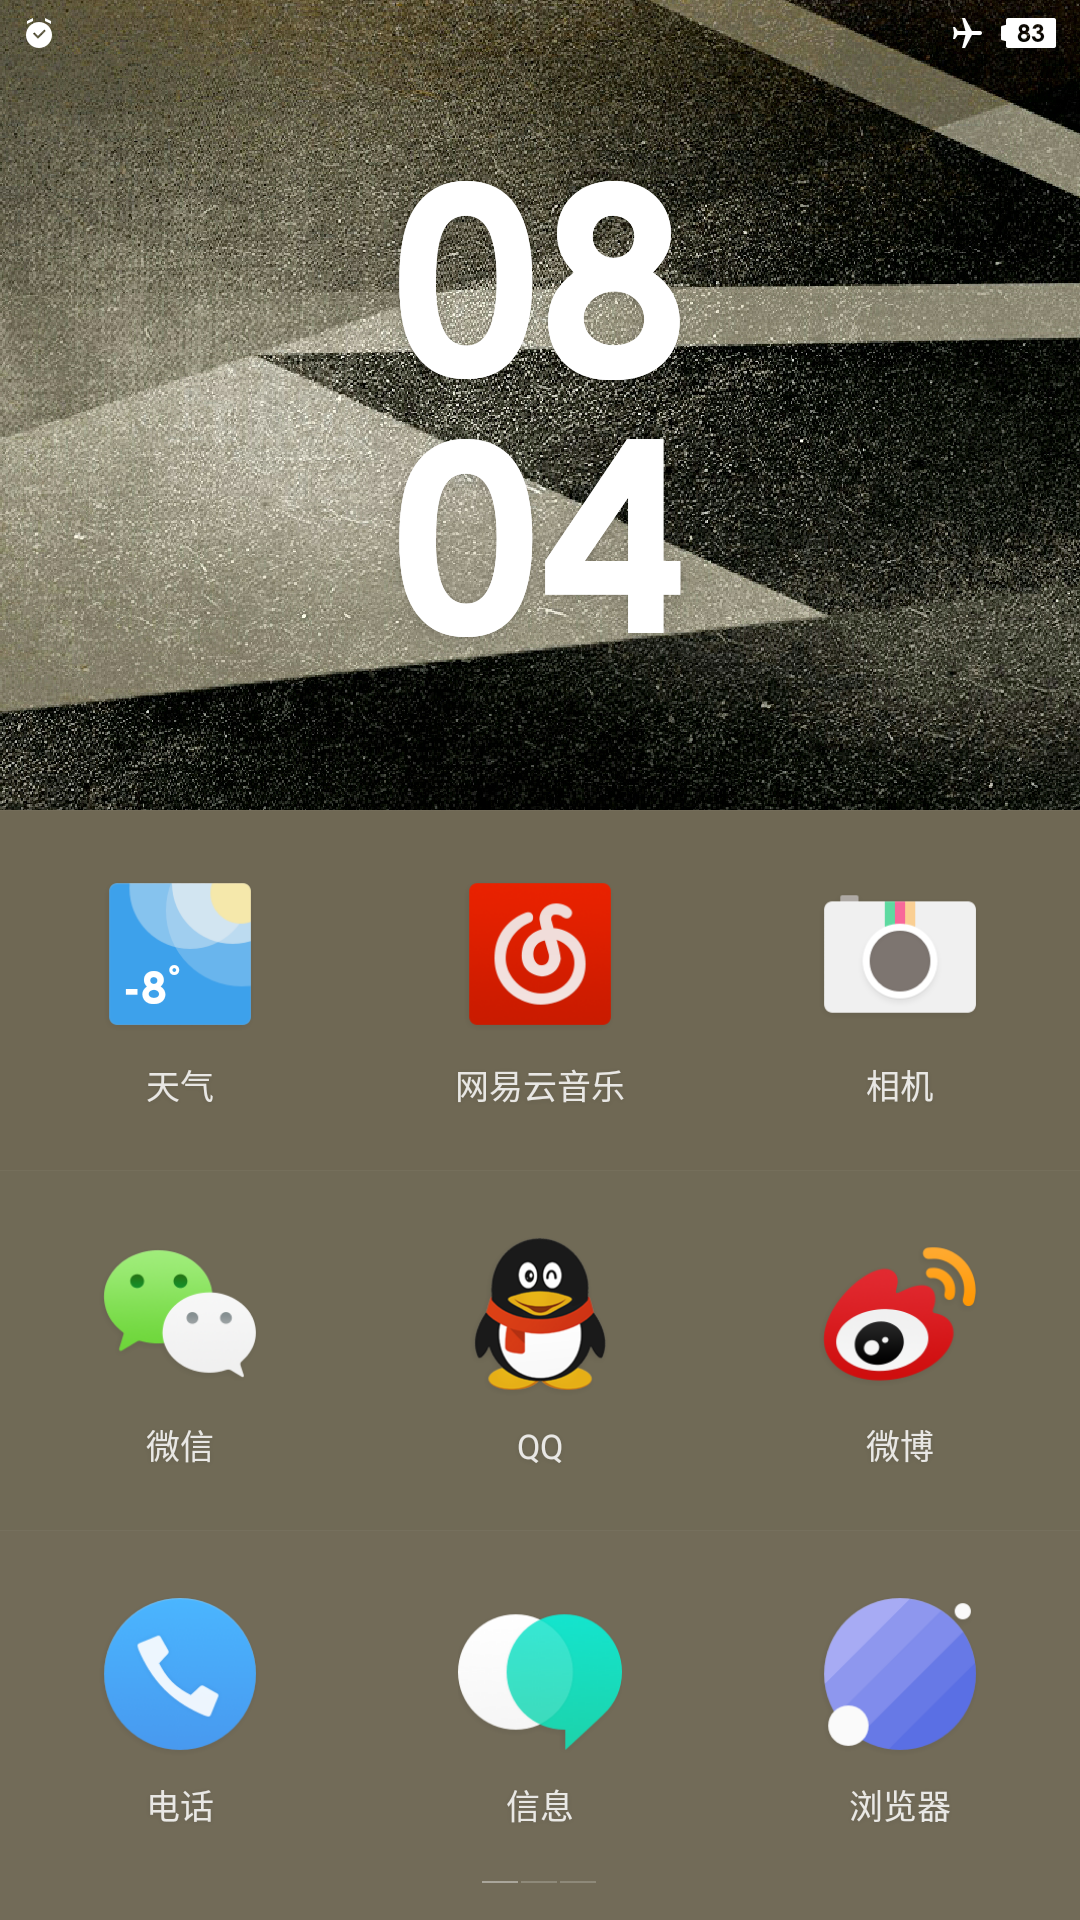 Screenshot_2015-11-26-08-04-03.png